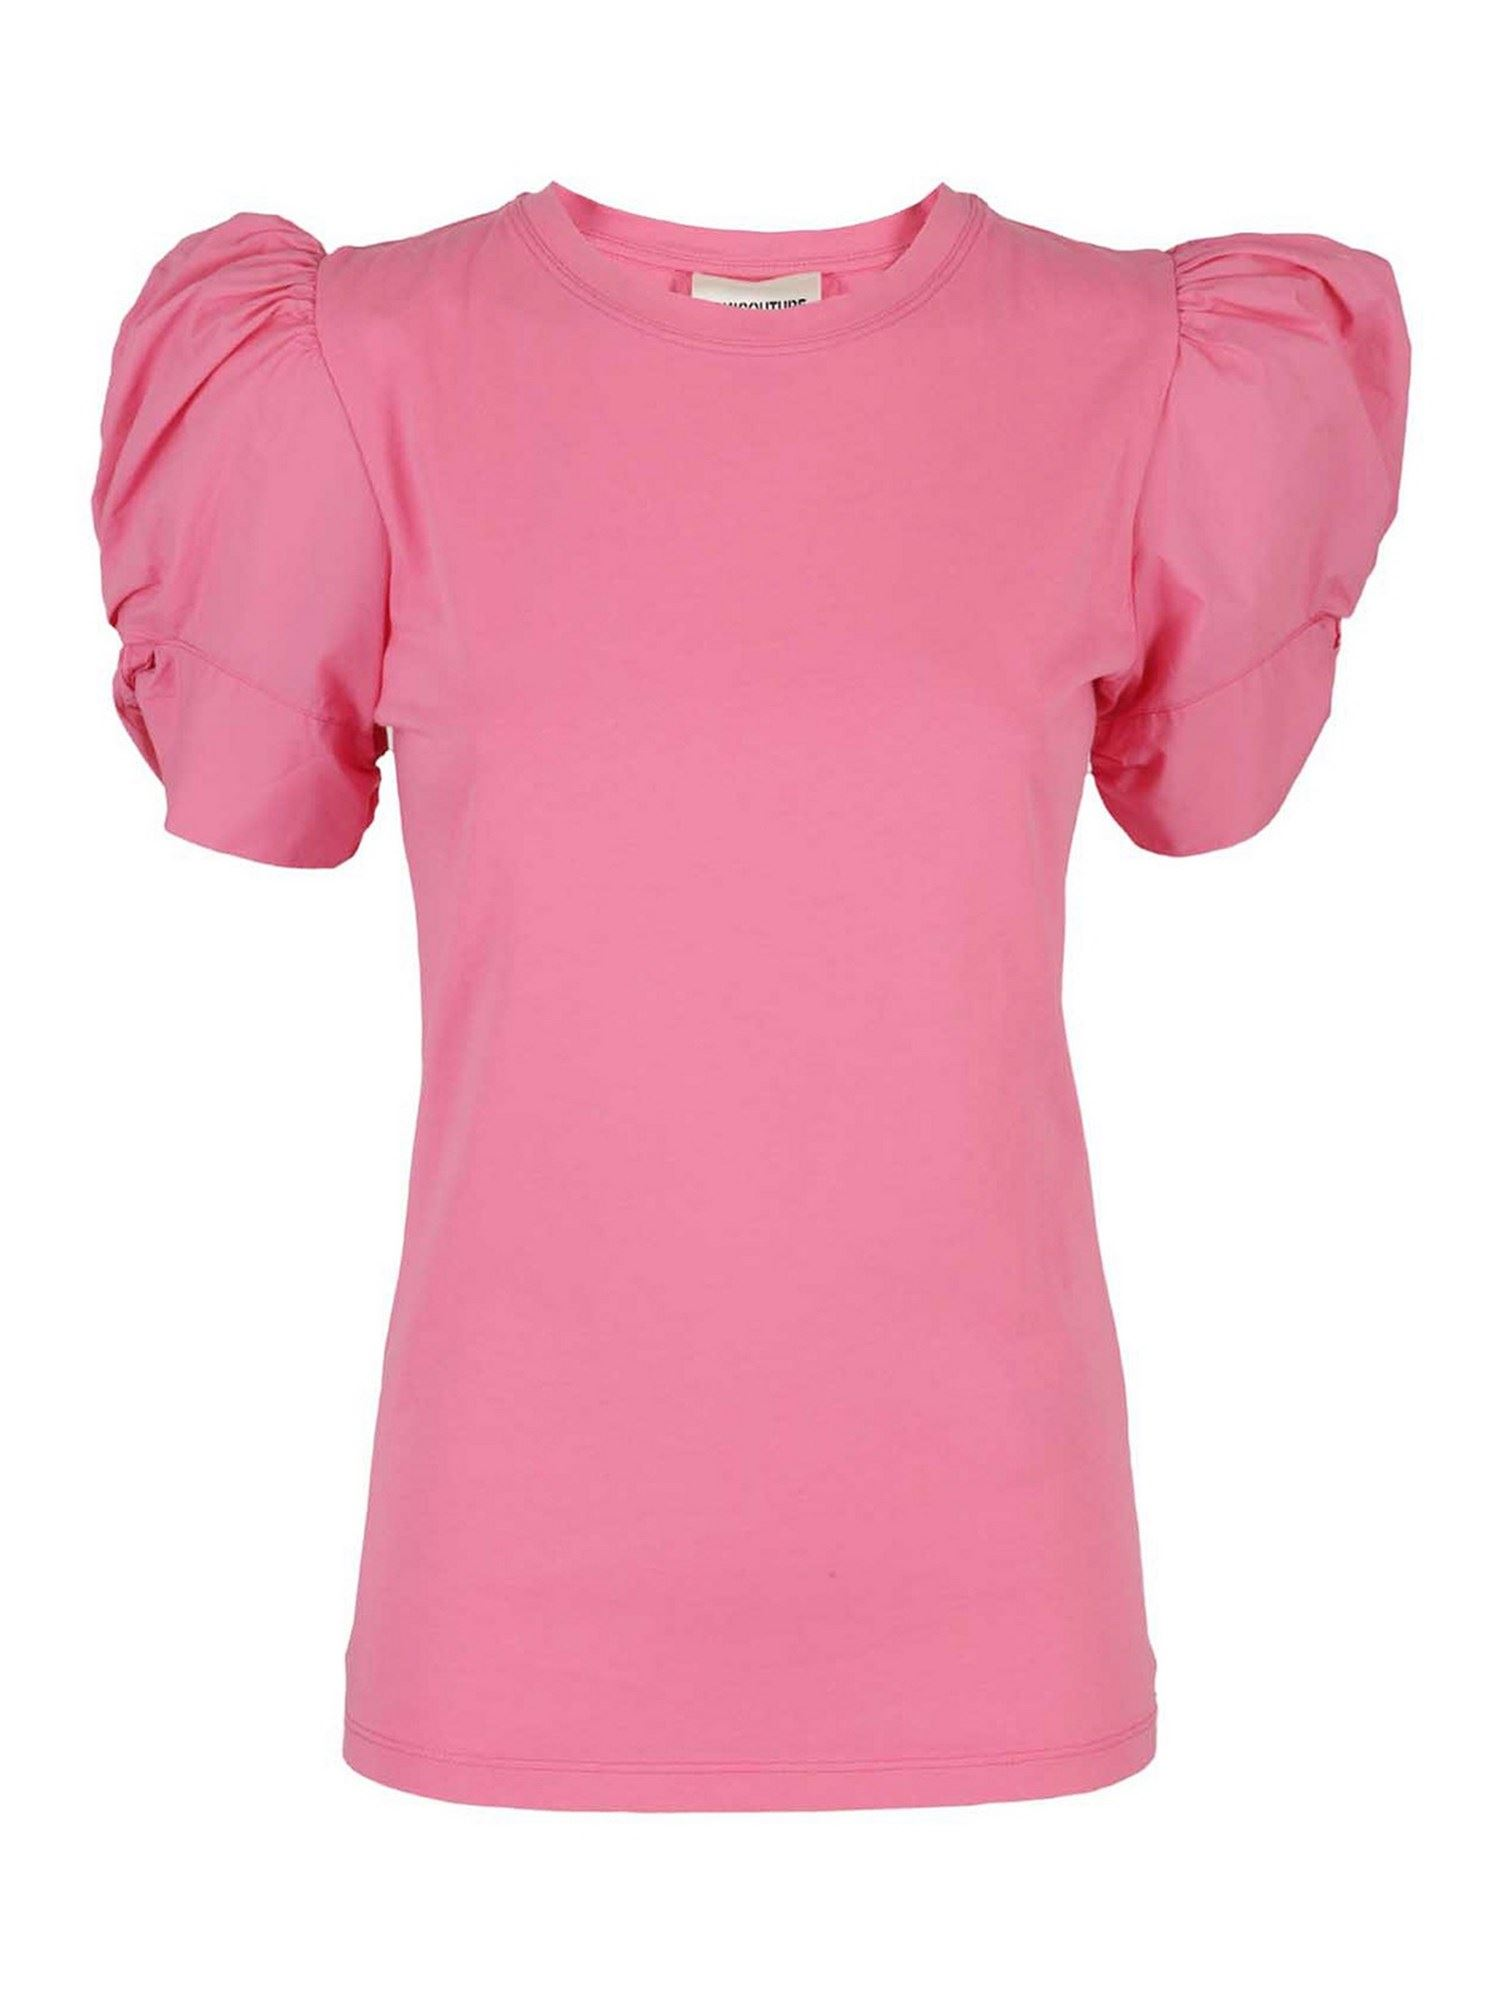 Semicouture ADELE T-SHIRT IN PINK